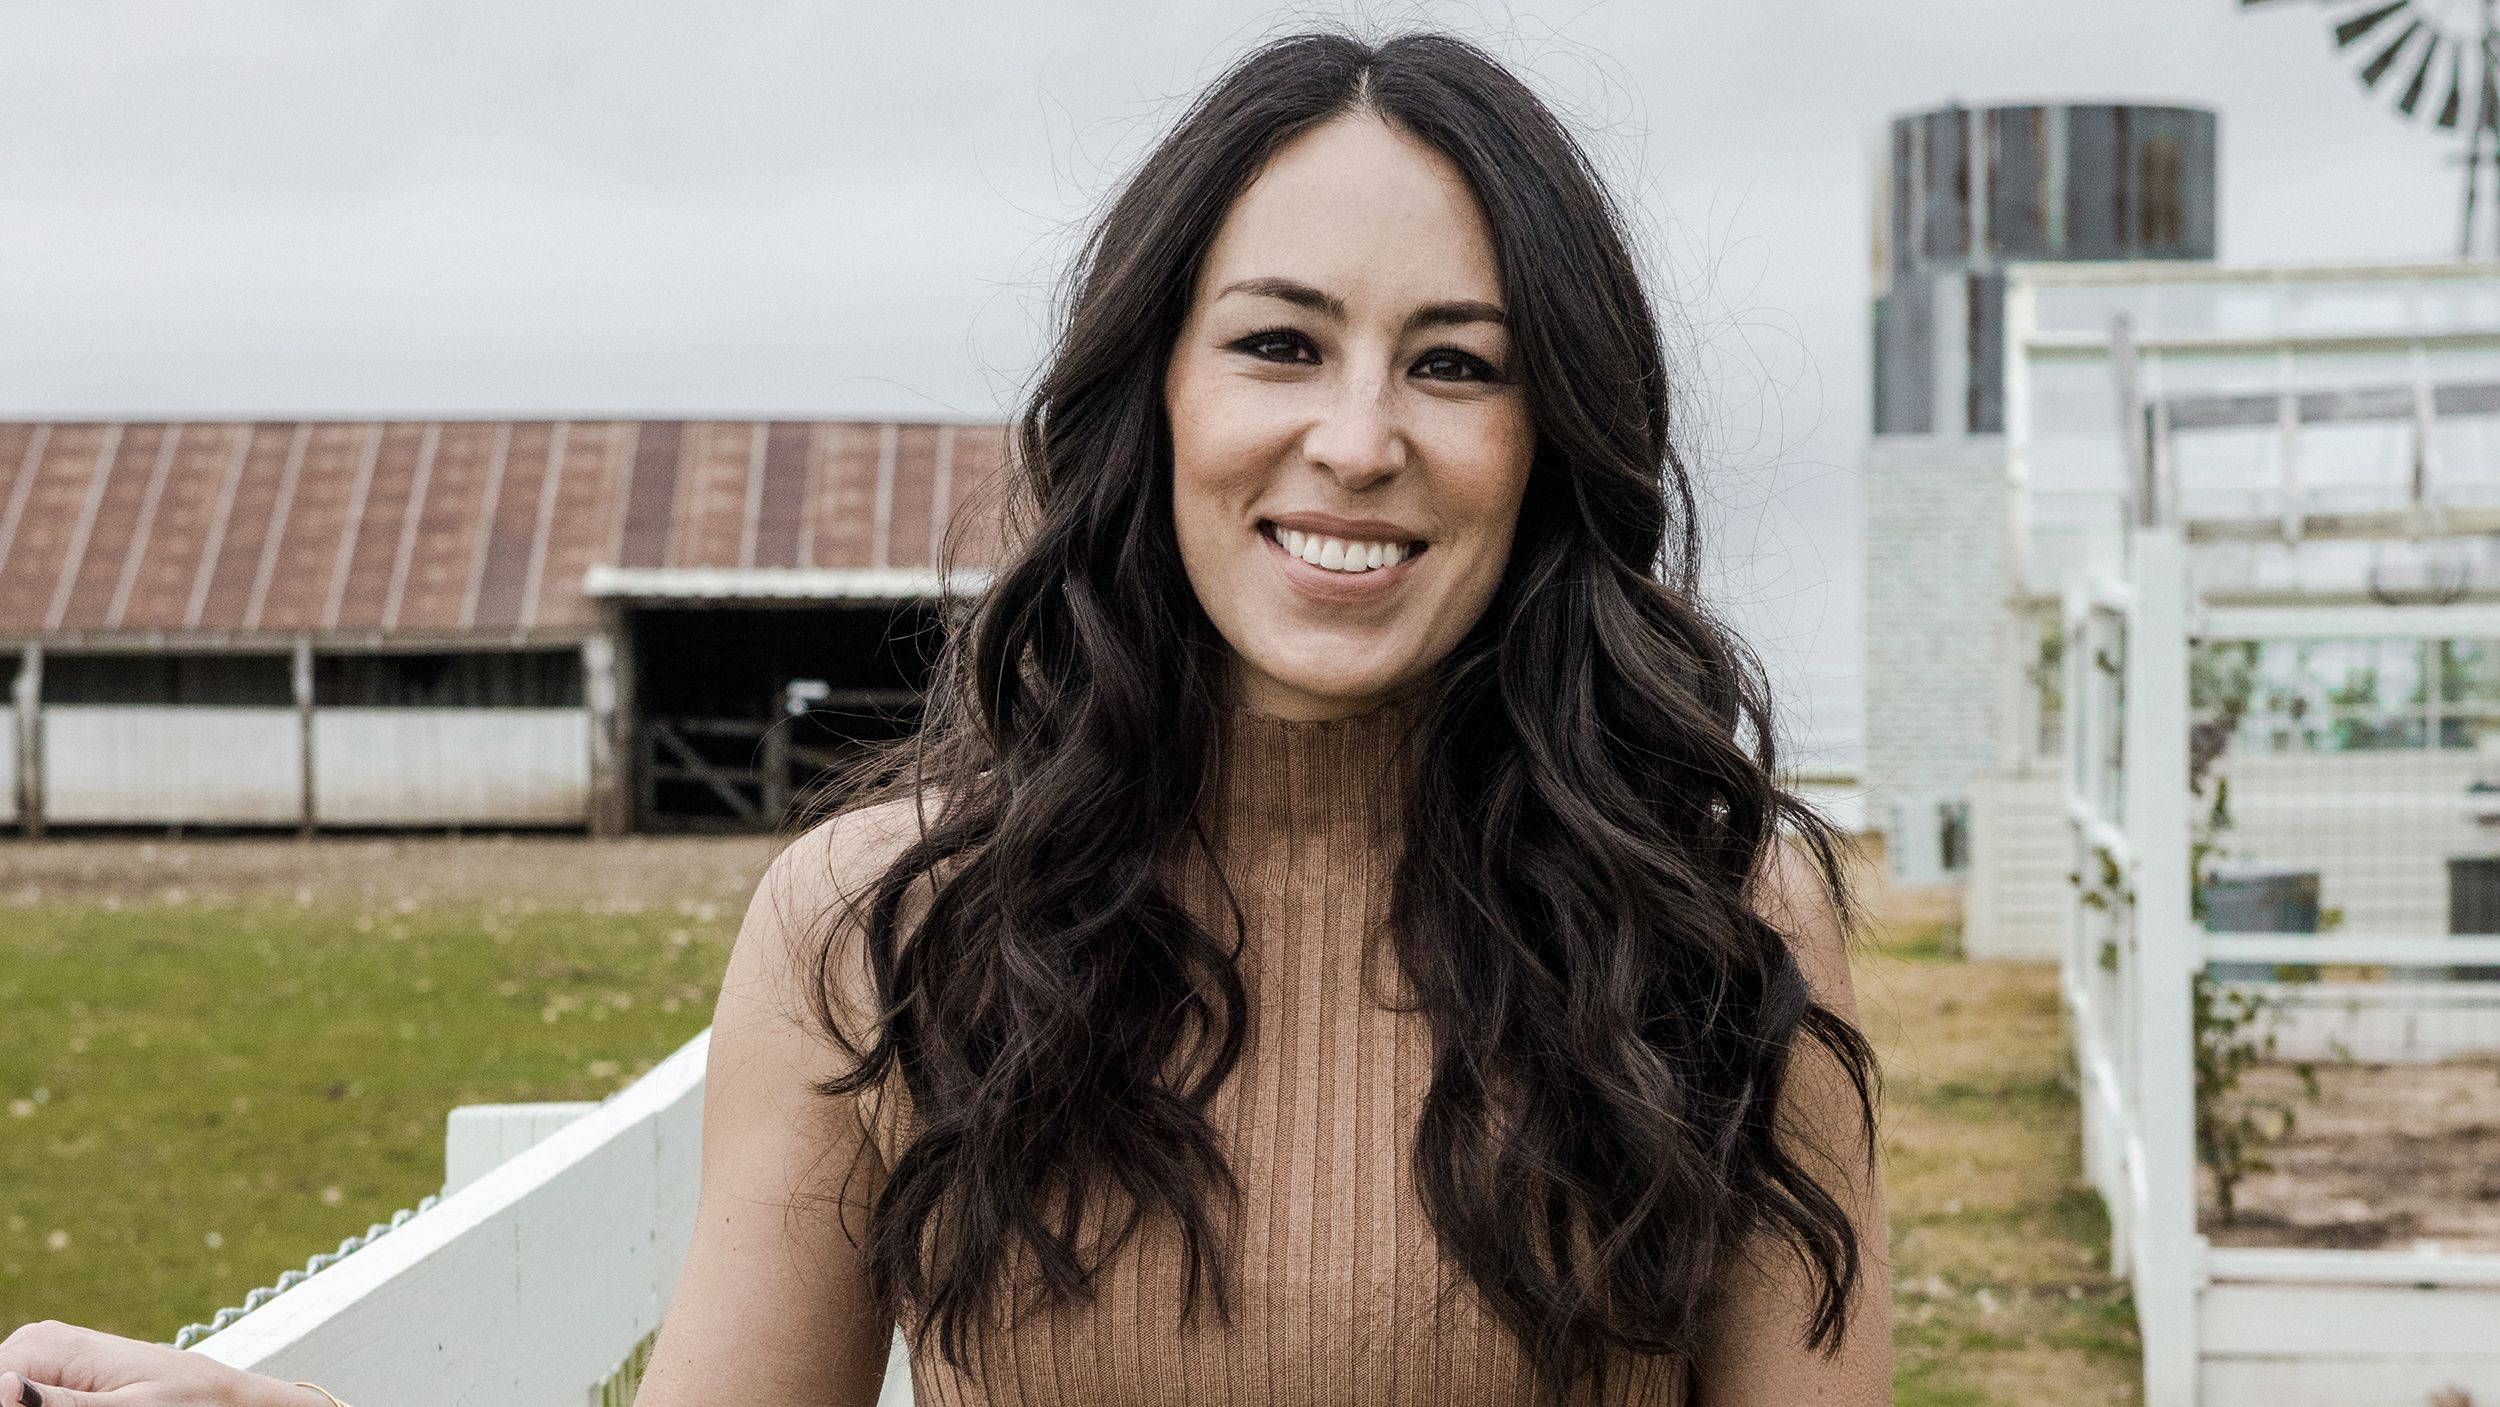 Fixer Upper Joanna Gaines Latest News May Bring Her Into Your Home Joanna Gaines Paint Fixer Upper Joanna Gaines Joanna Gaines